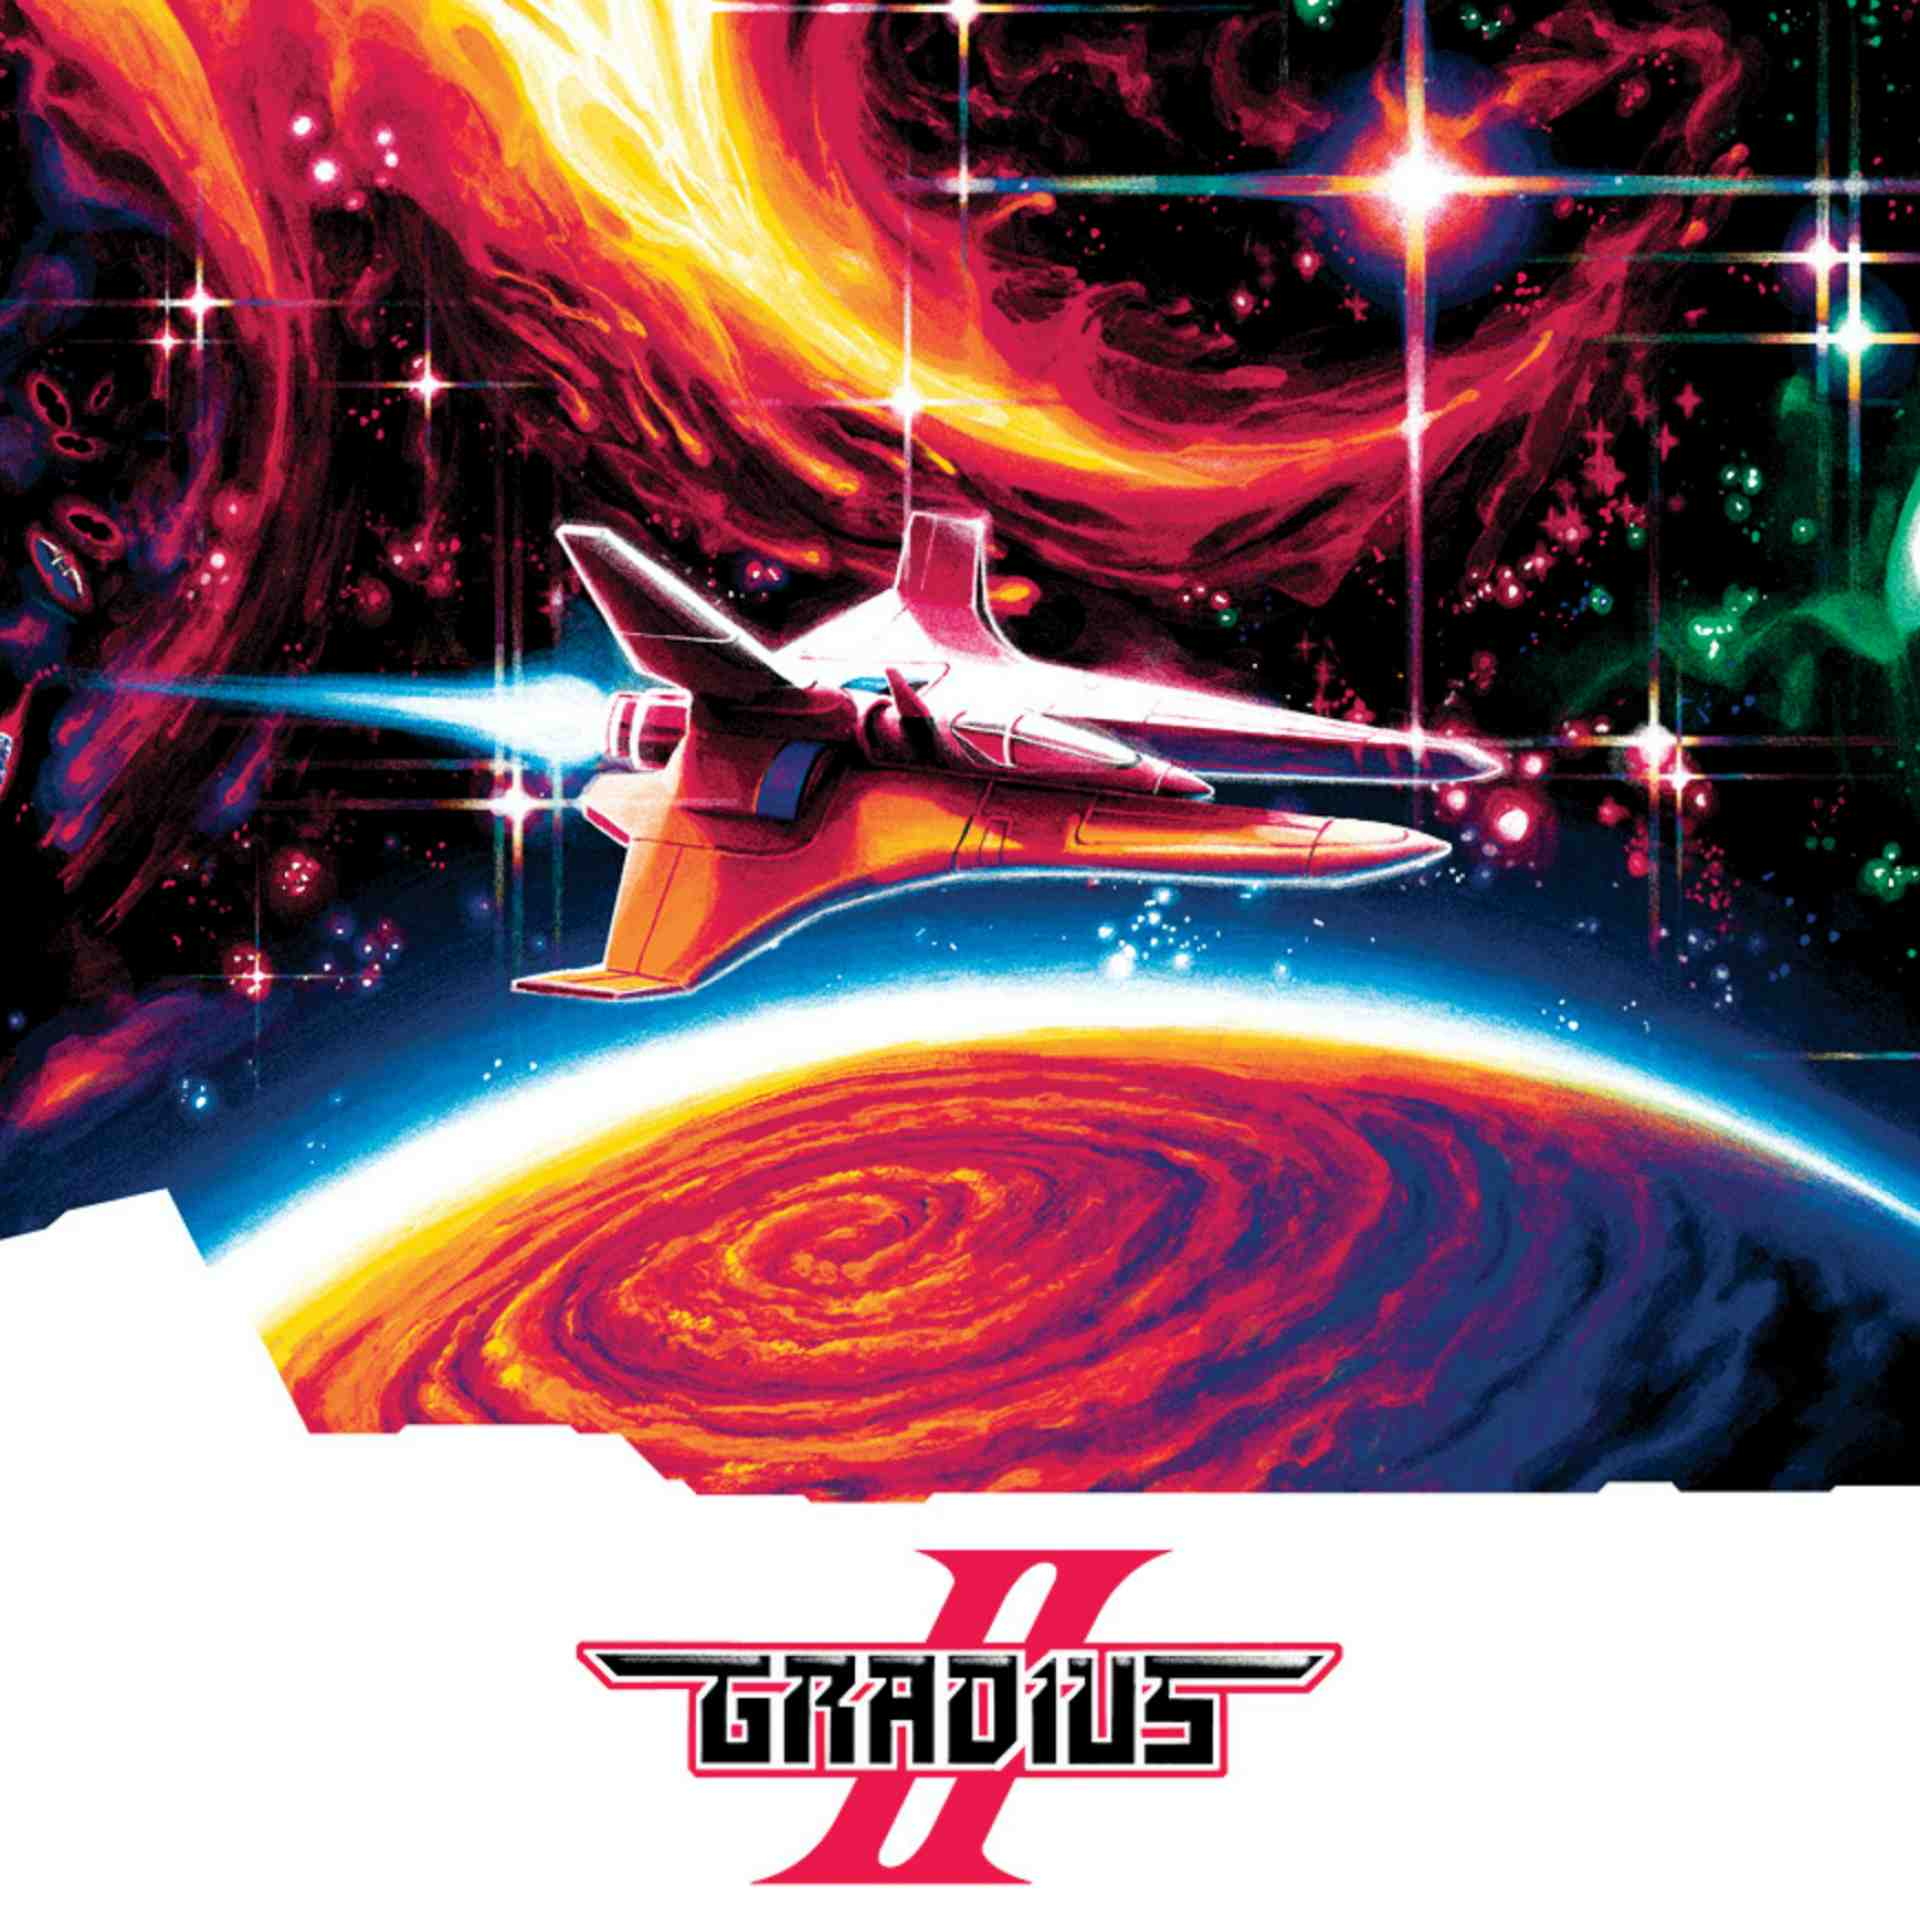 Gradius II - Original Video Game Soundtrack LP